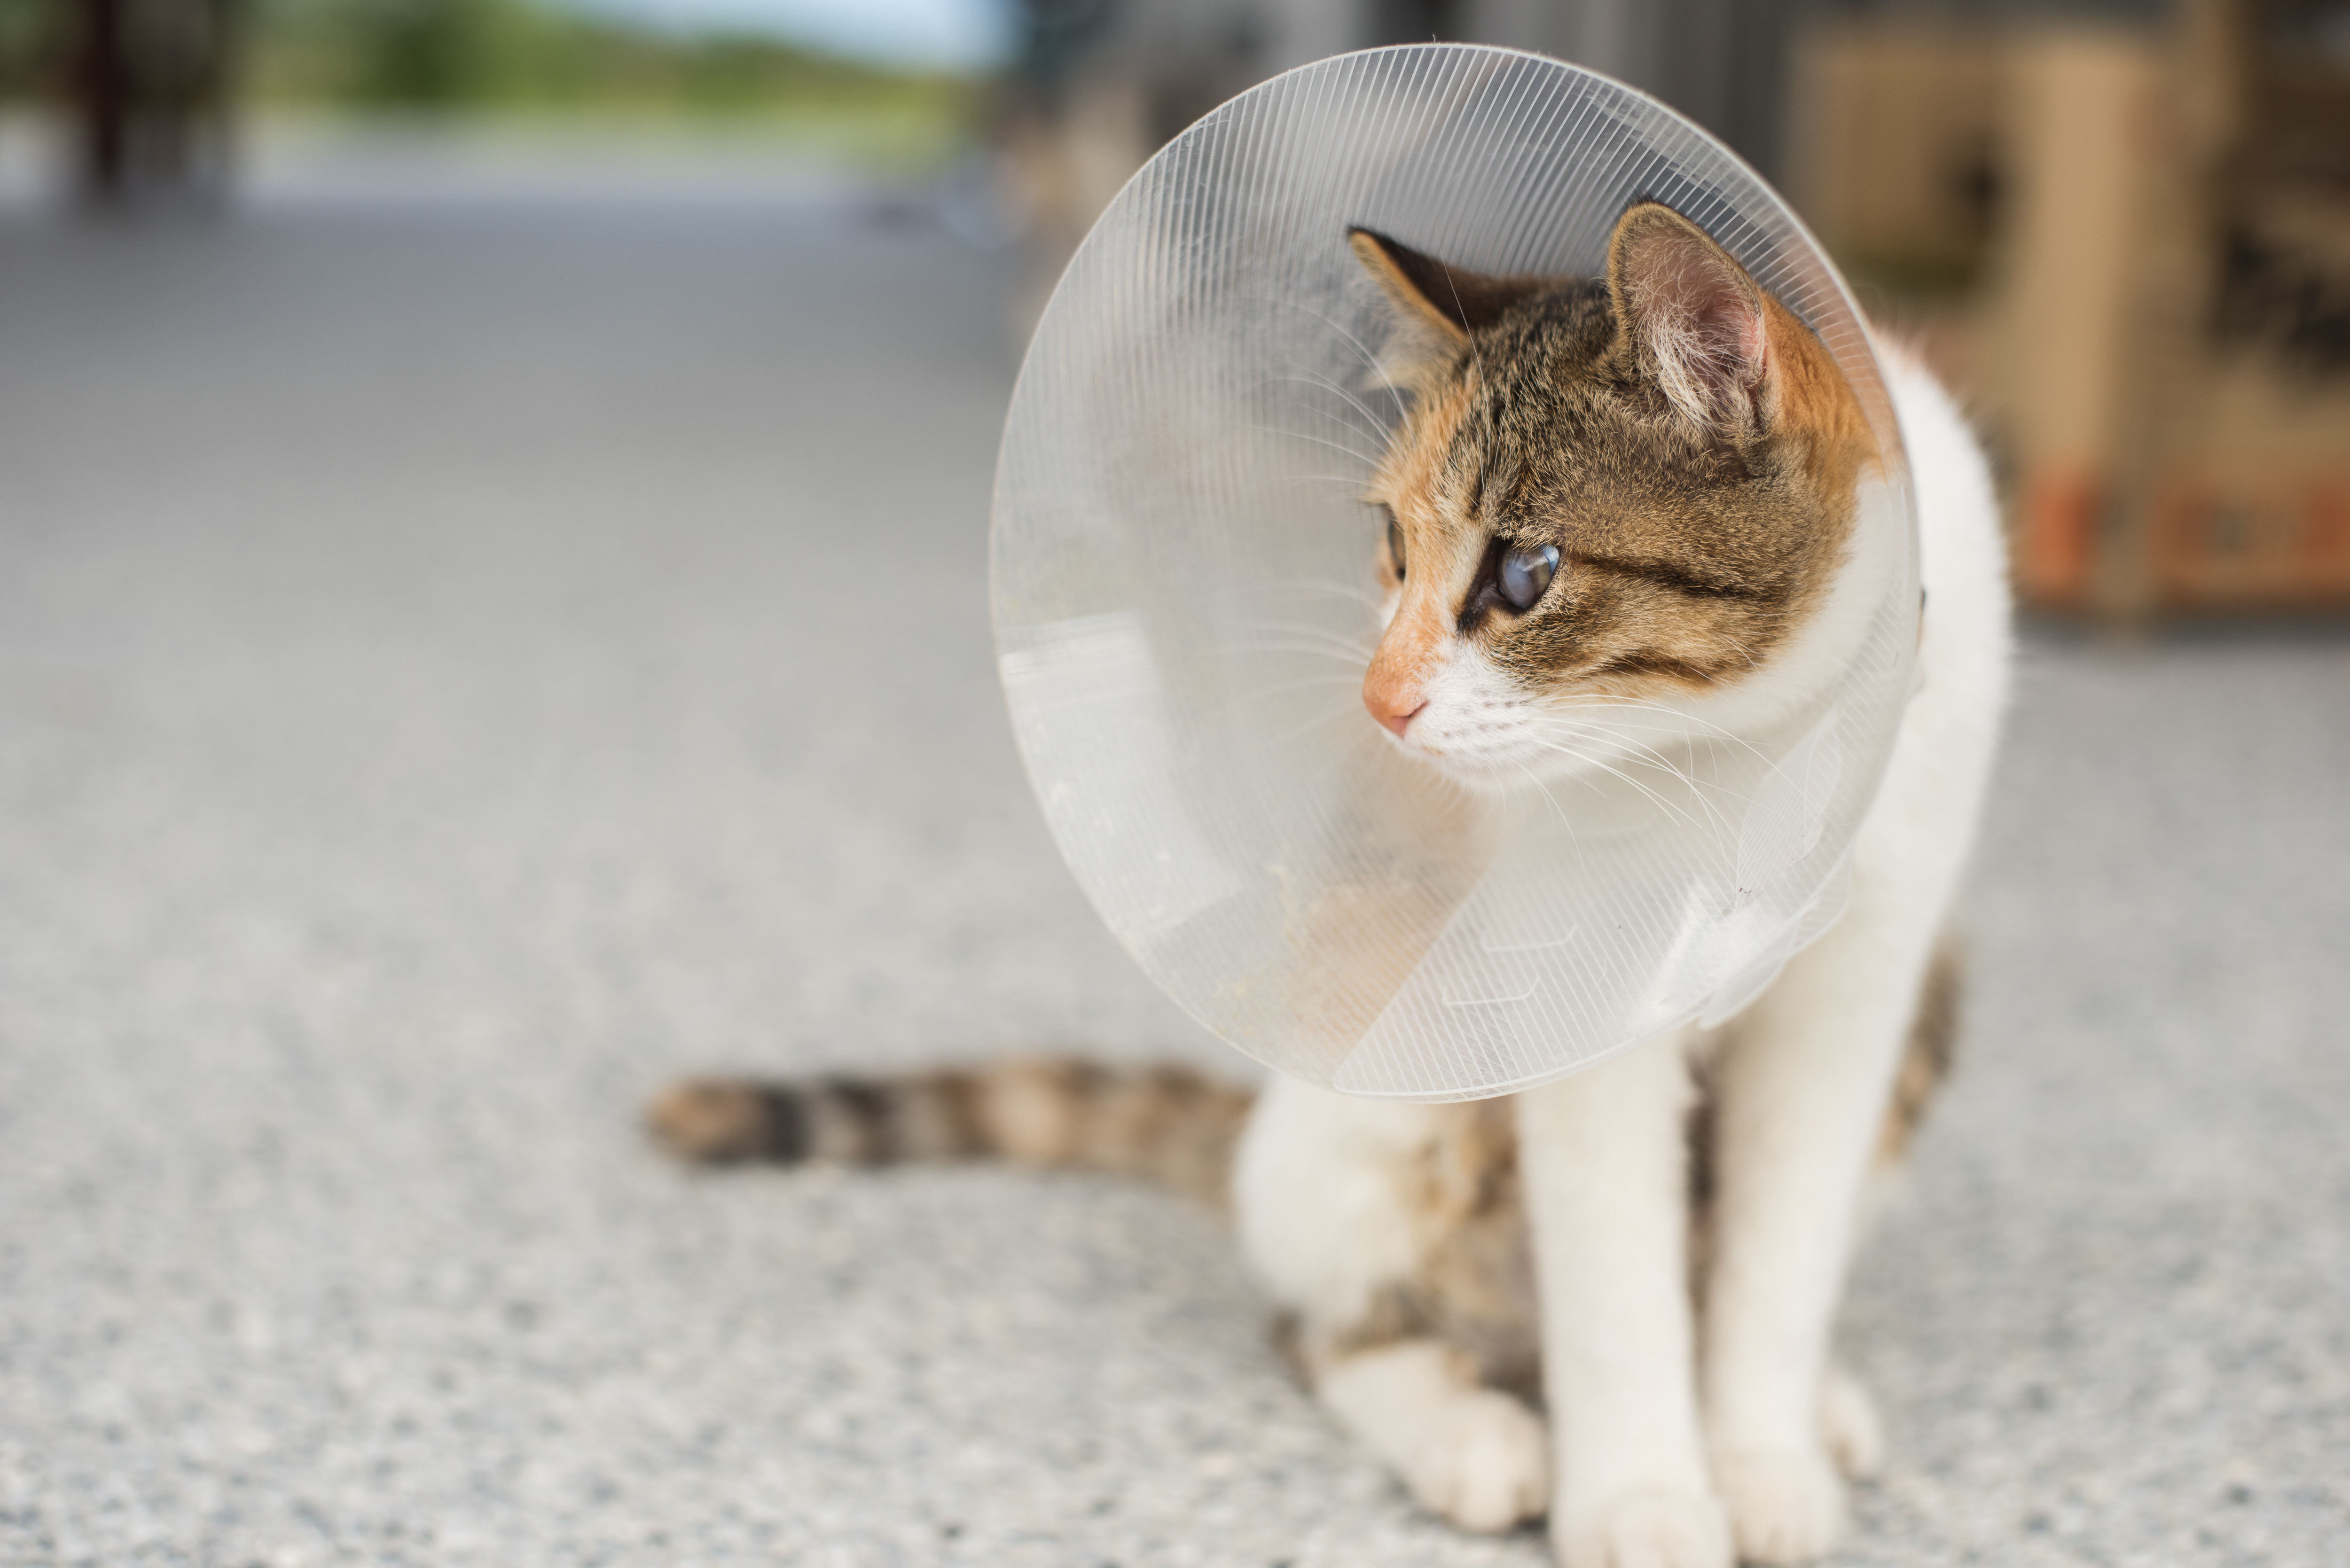 e-collar cone for spayed/neutered pets.